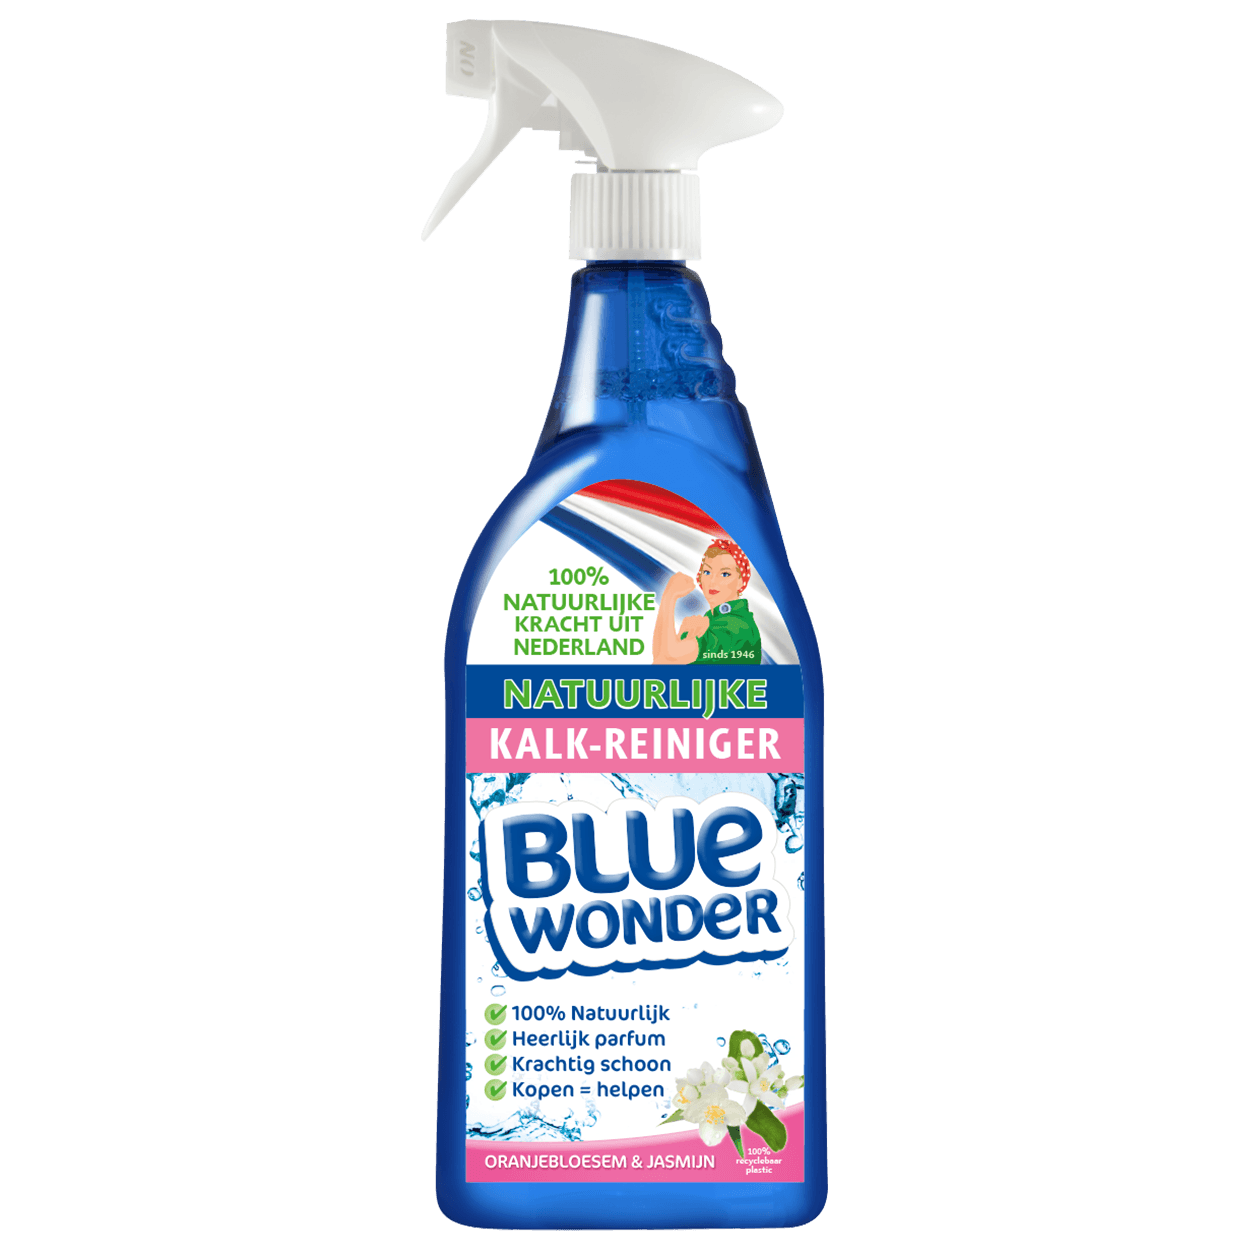 8712038001684_Blue Wonder Kalk-reiniger_Oranjebloesem-Jasmijn_750ml_spray_042018_voor